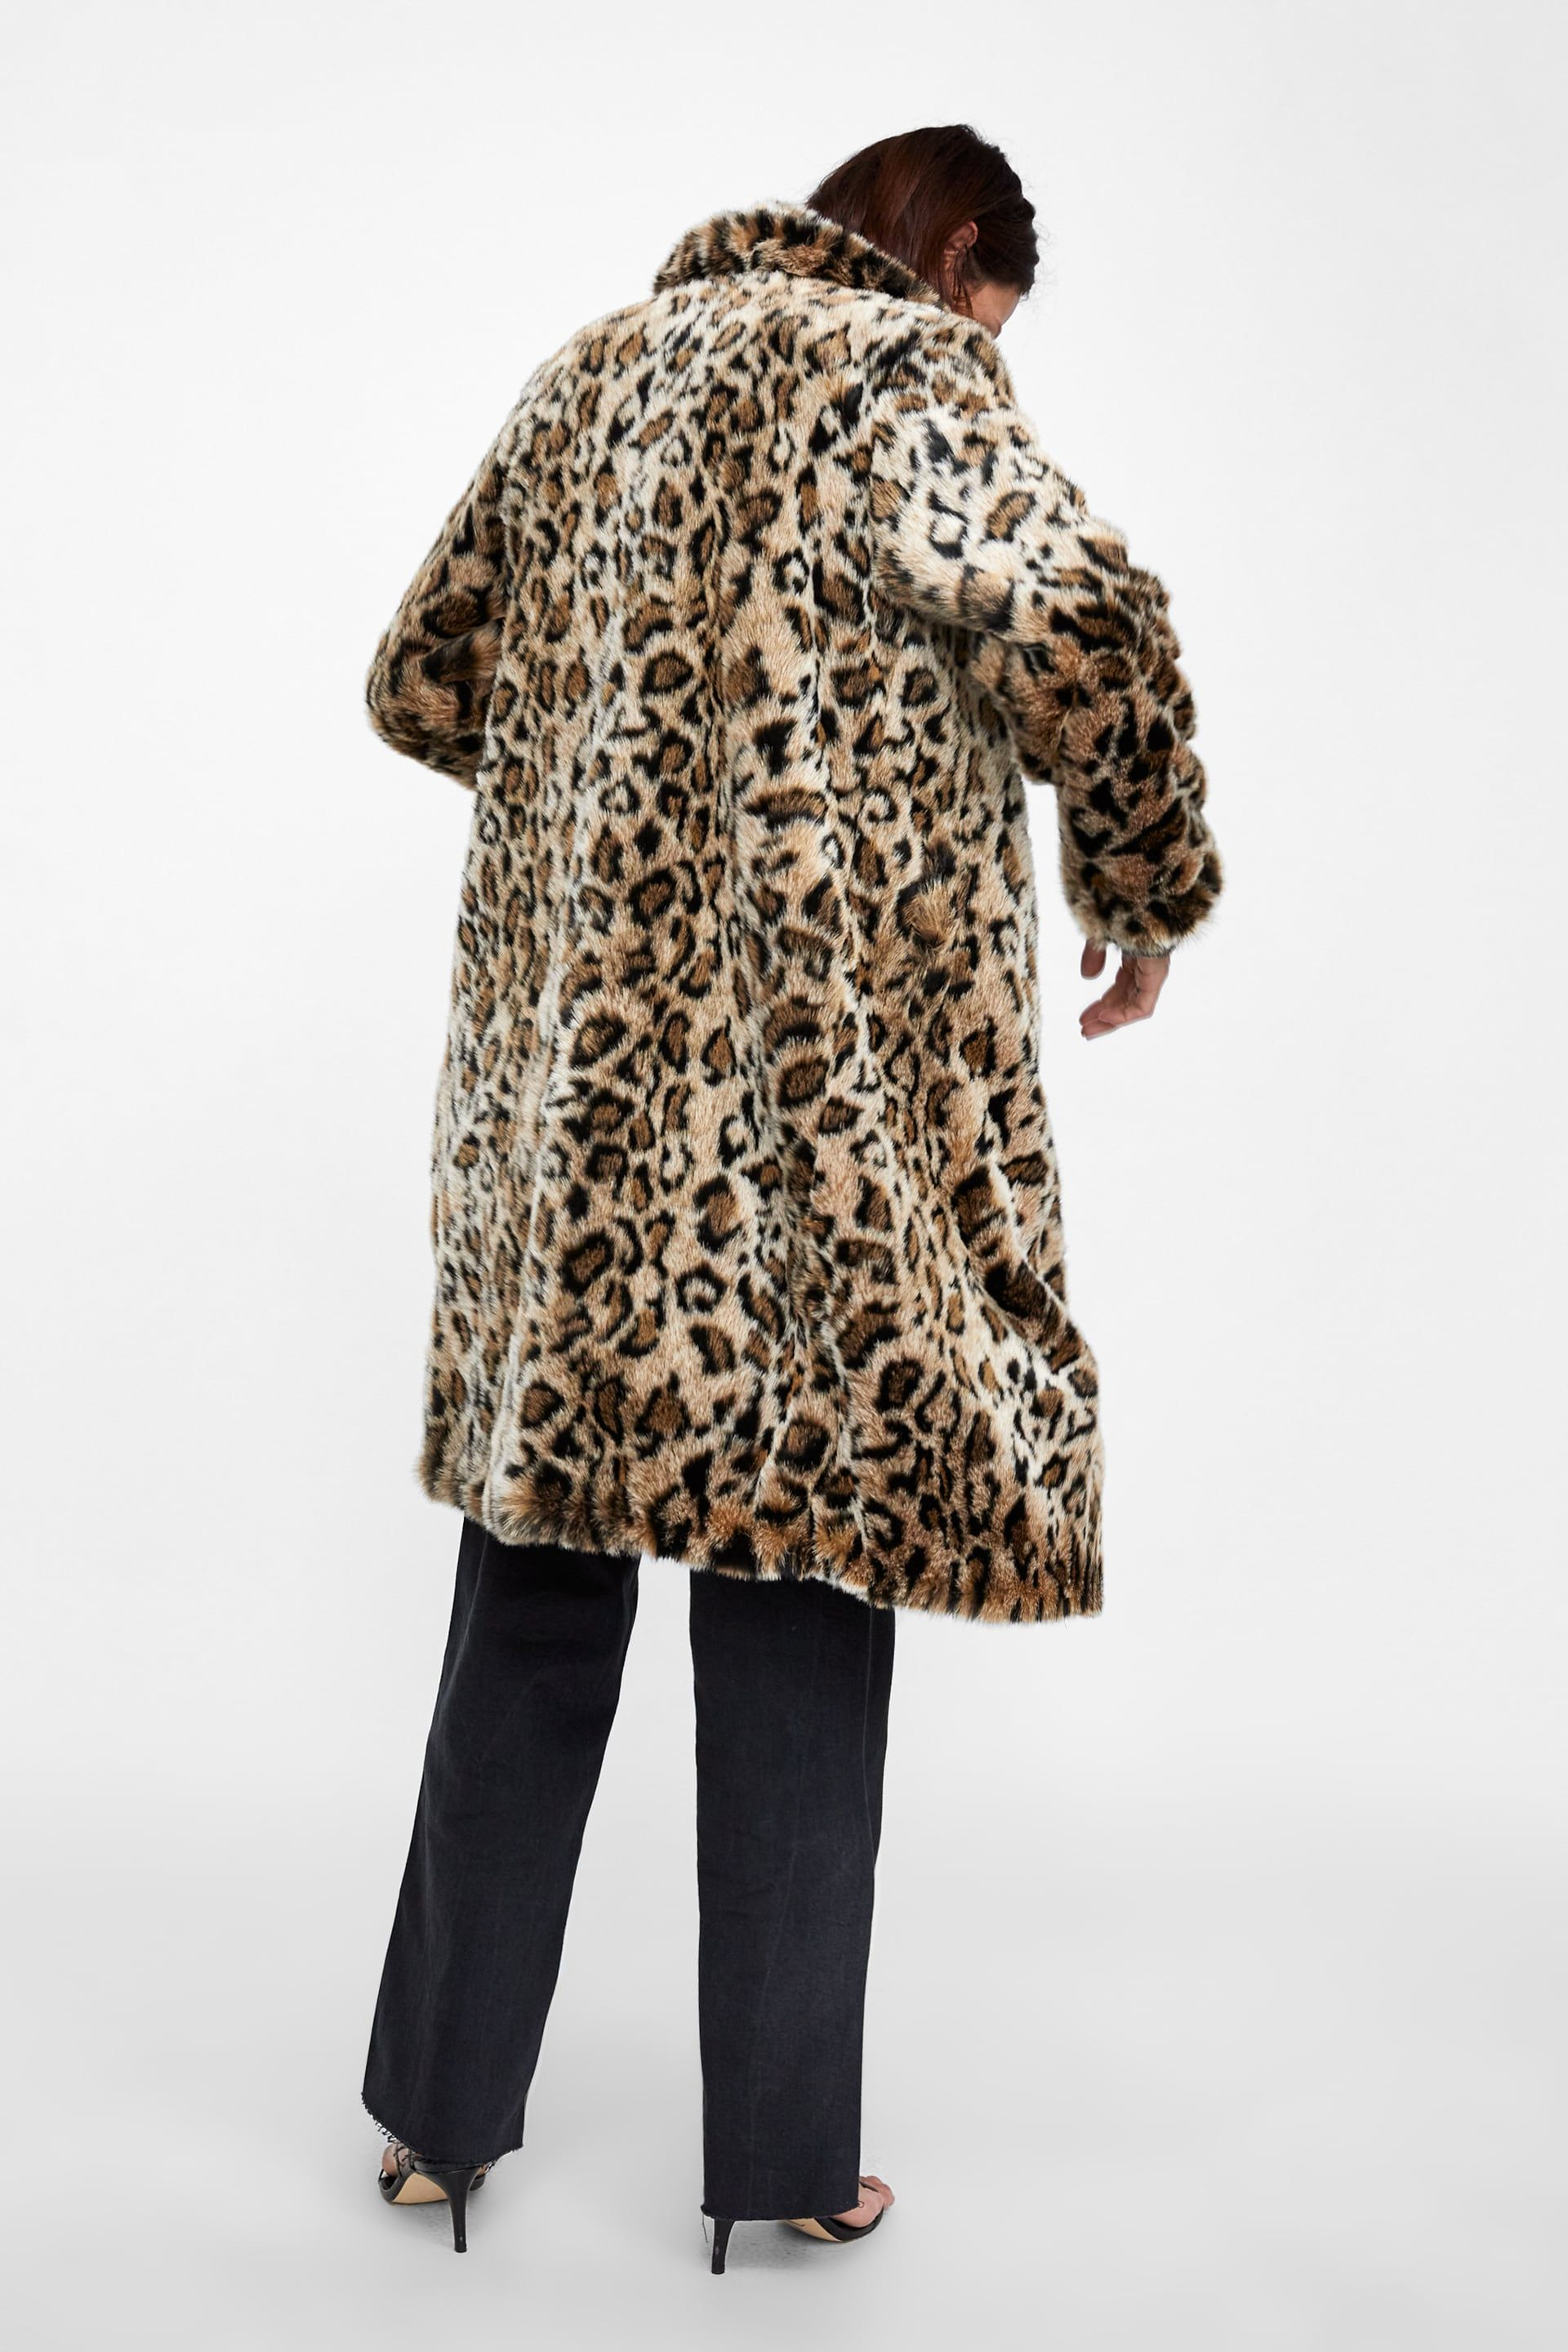 1db5c4489a26 Image 3 of ANIMAL PRINT TEXTURED COAT from Zara | Eclectic closet ...